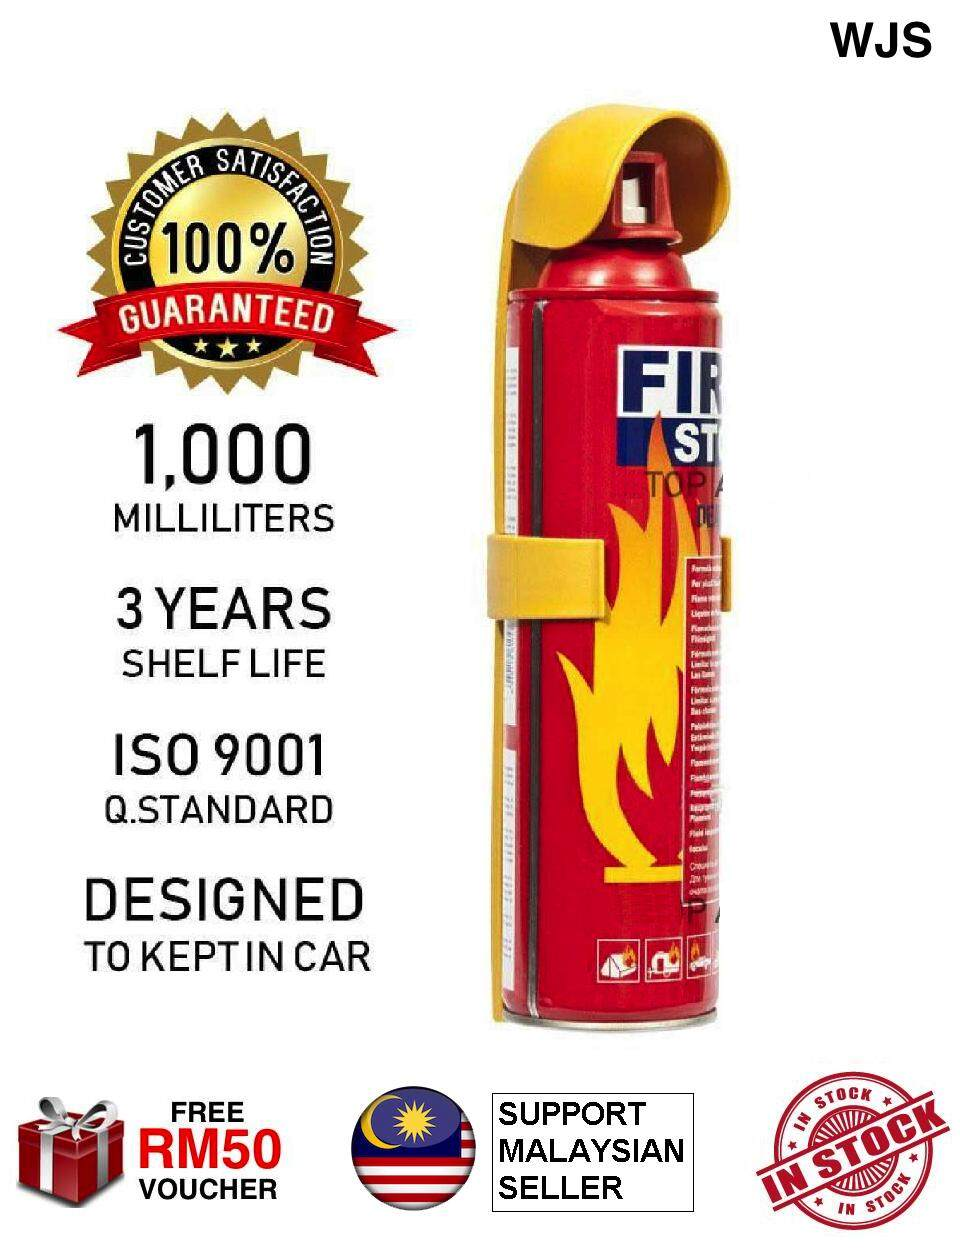 (LONG SHELF LIFE) WJS Car Mini Fire Extinguisher with Cover 1000ml Foam for Car & Home Usage Fire Stopper Fire Blower Prevent Fire Pemadam Api RED [FREE RM 50 VOUCHER]